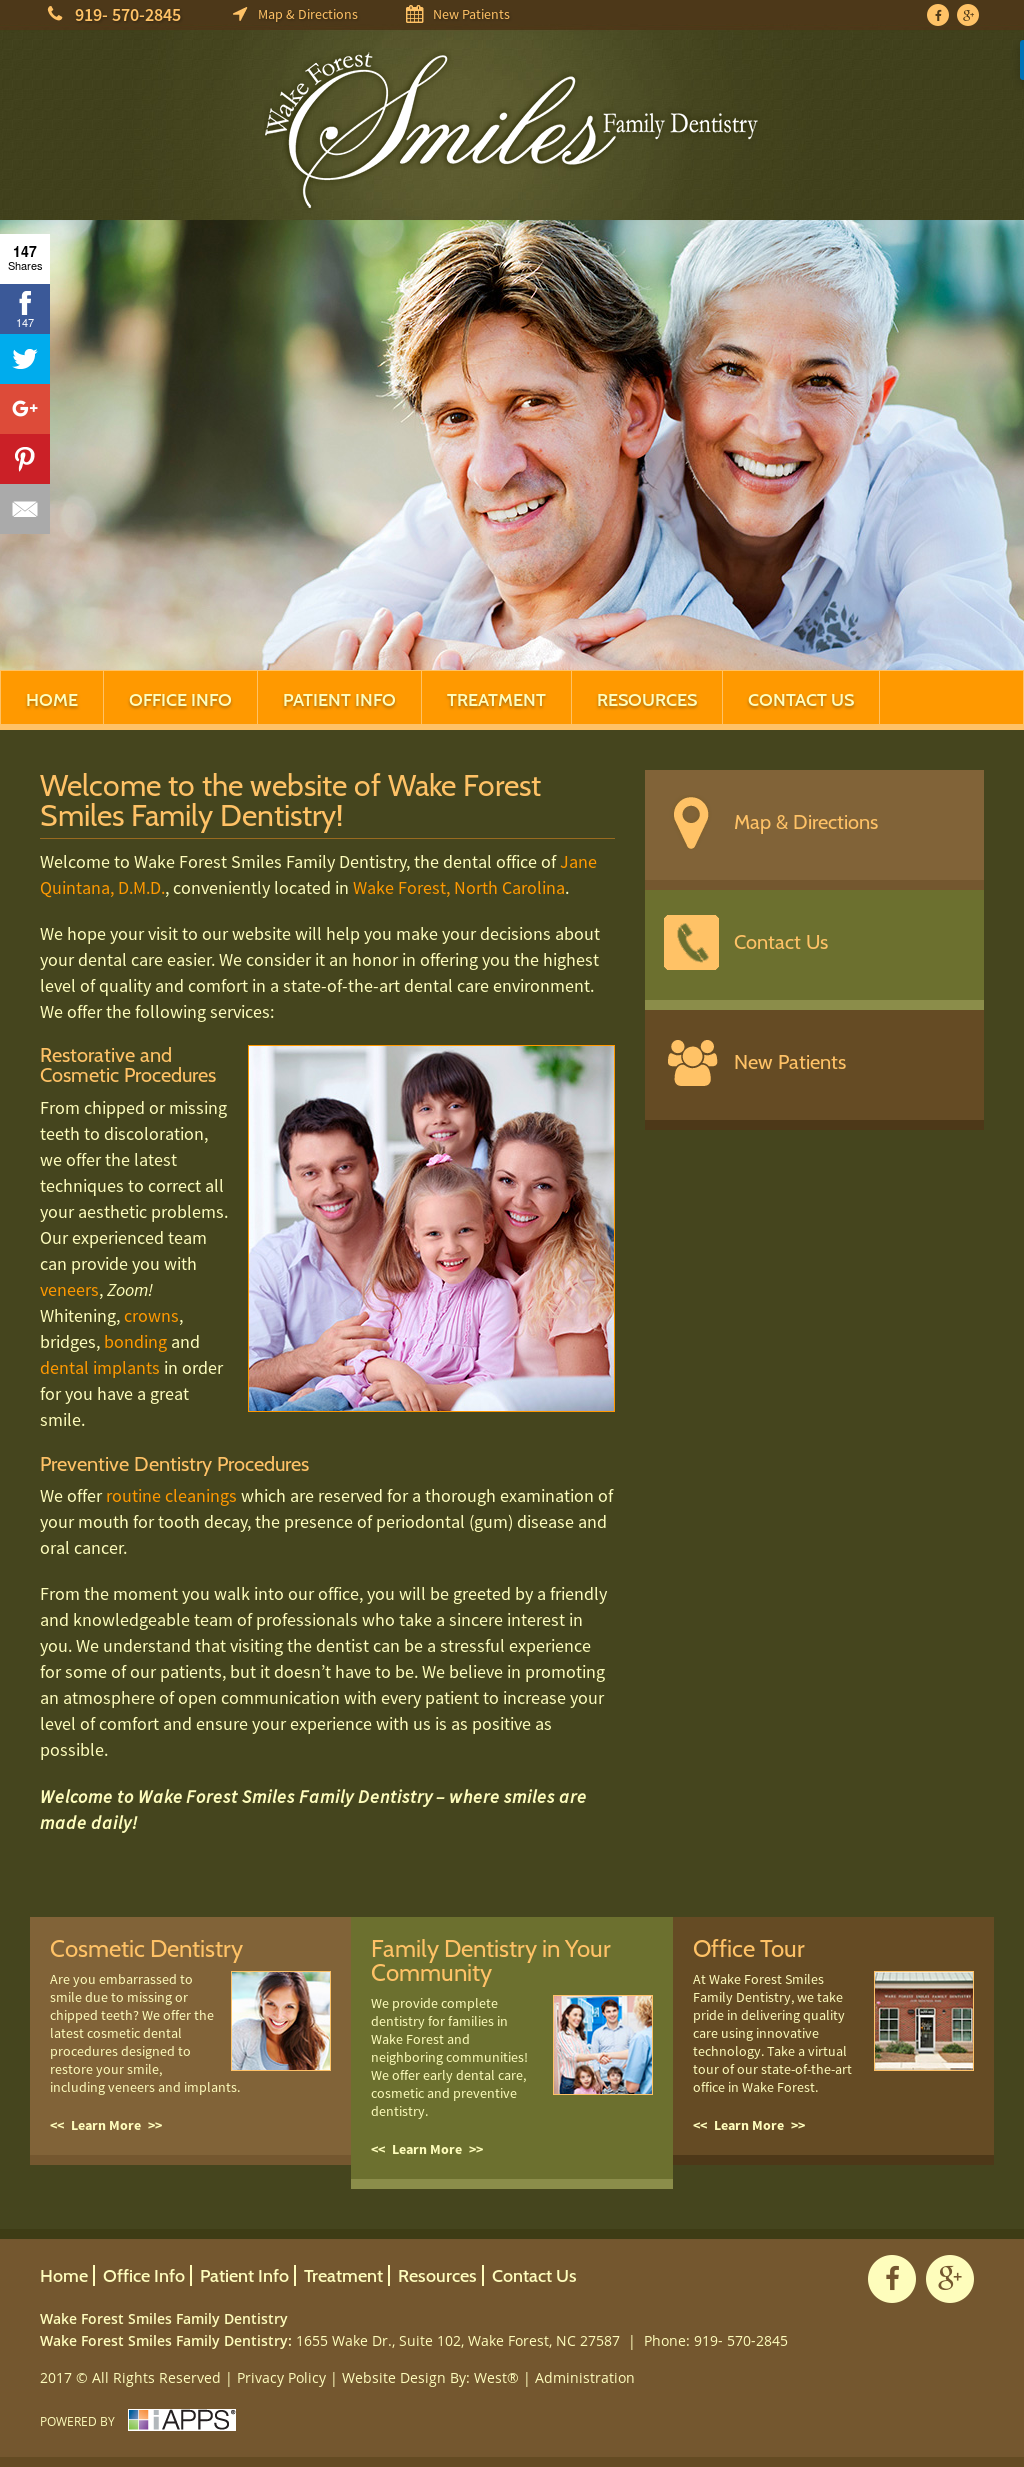 Wake Forest Smiles Family Dentistry Competitors, Revenue and